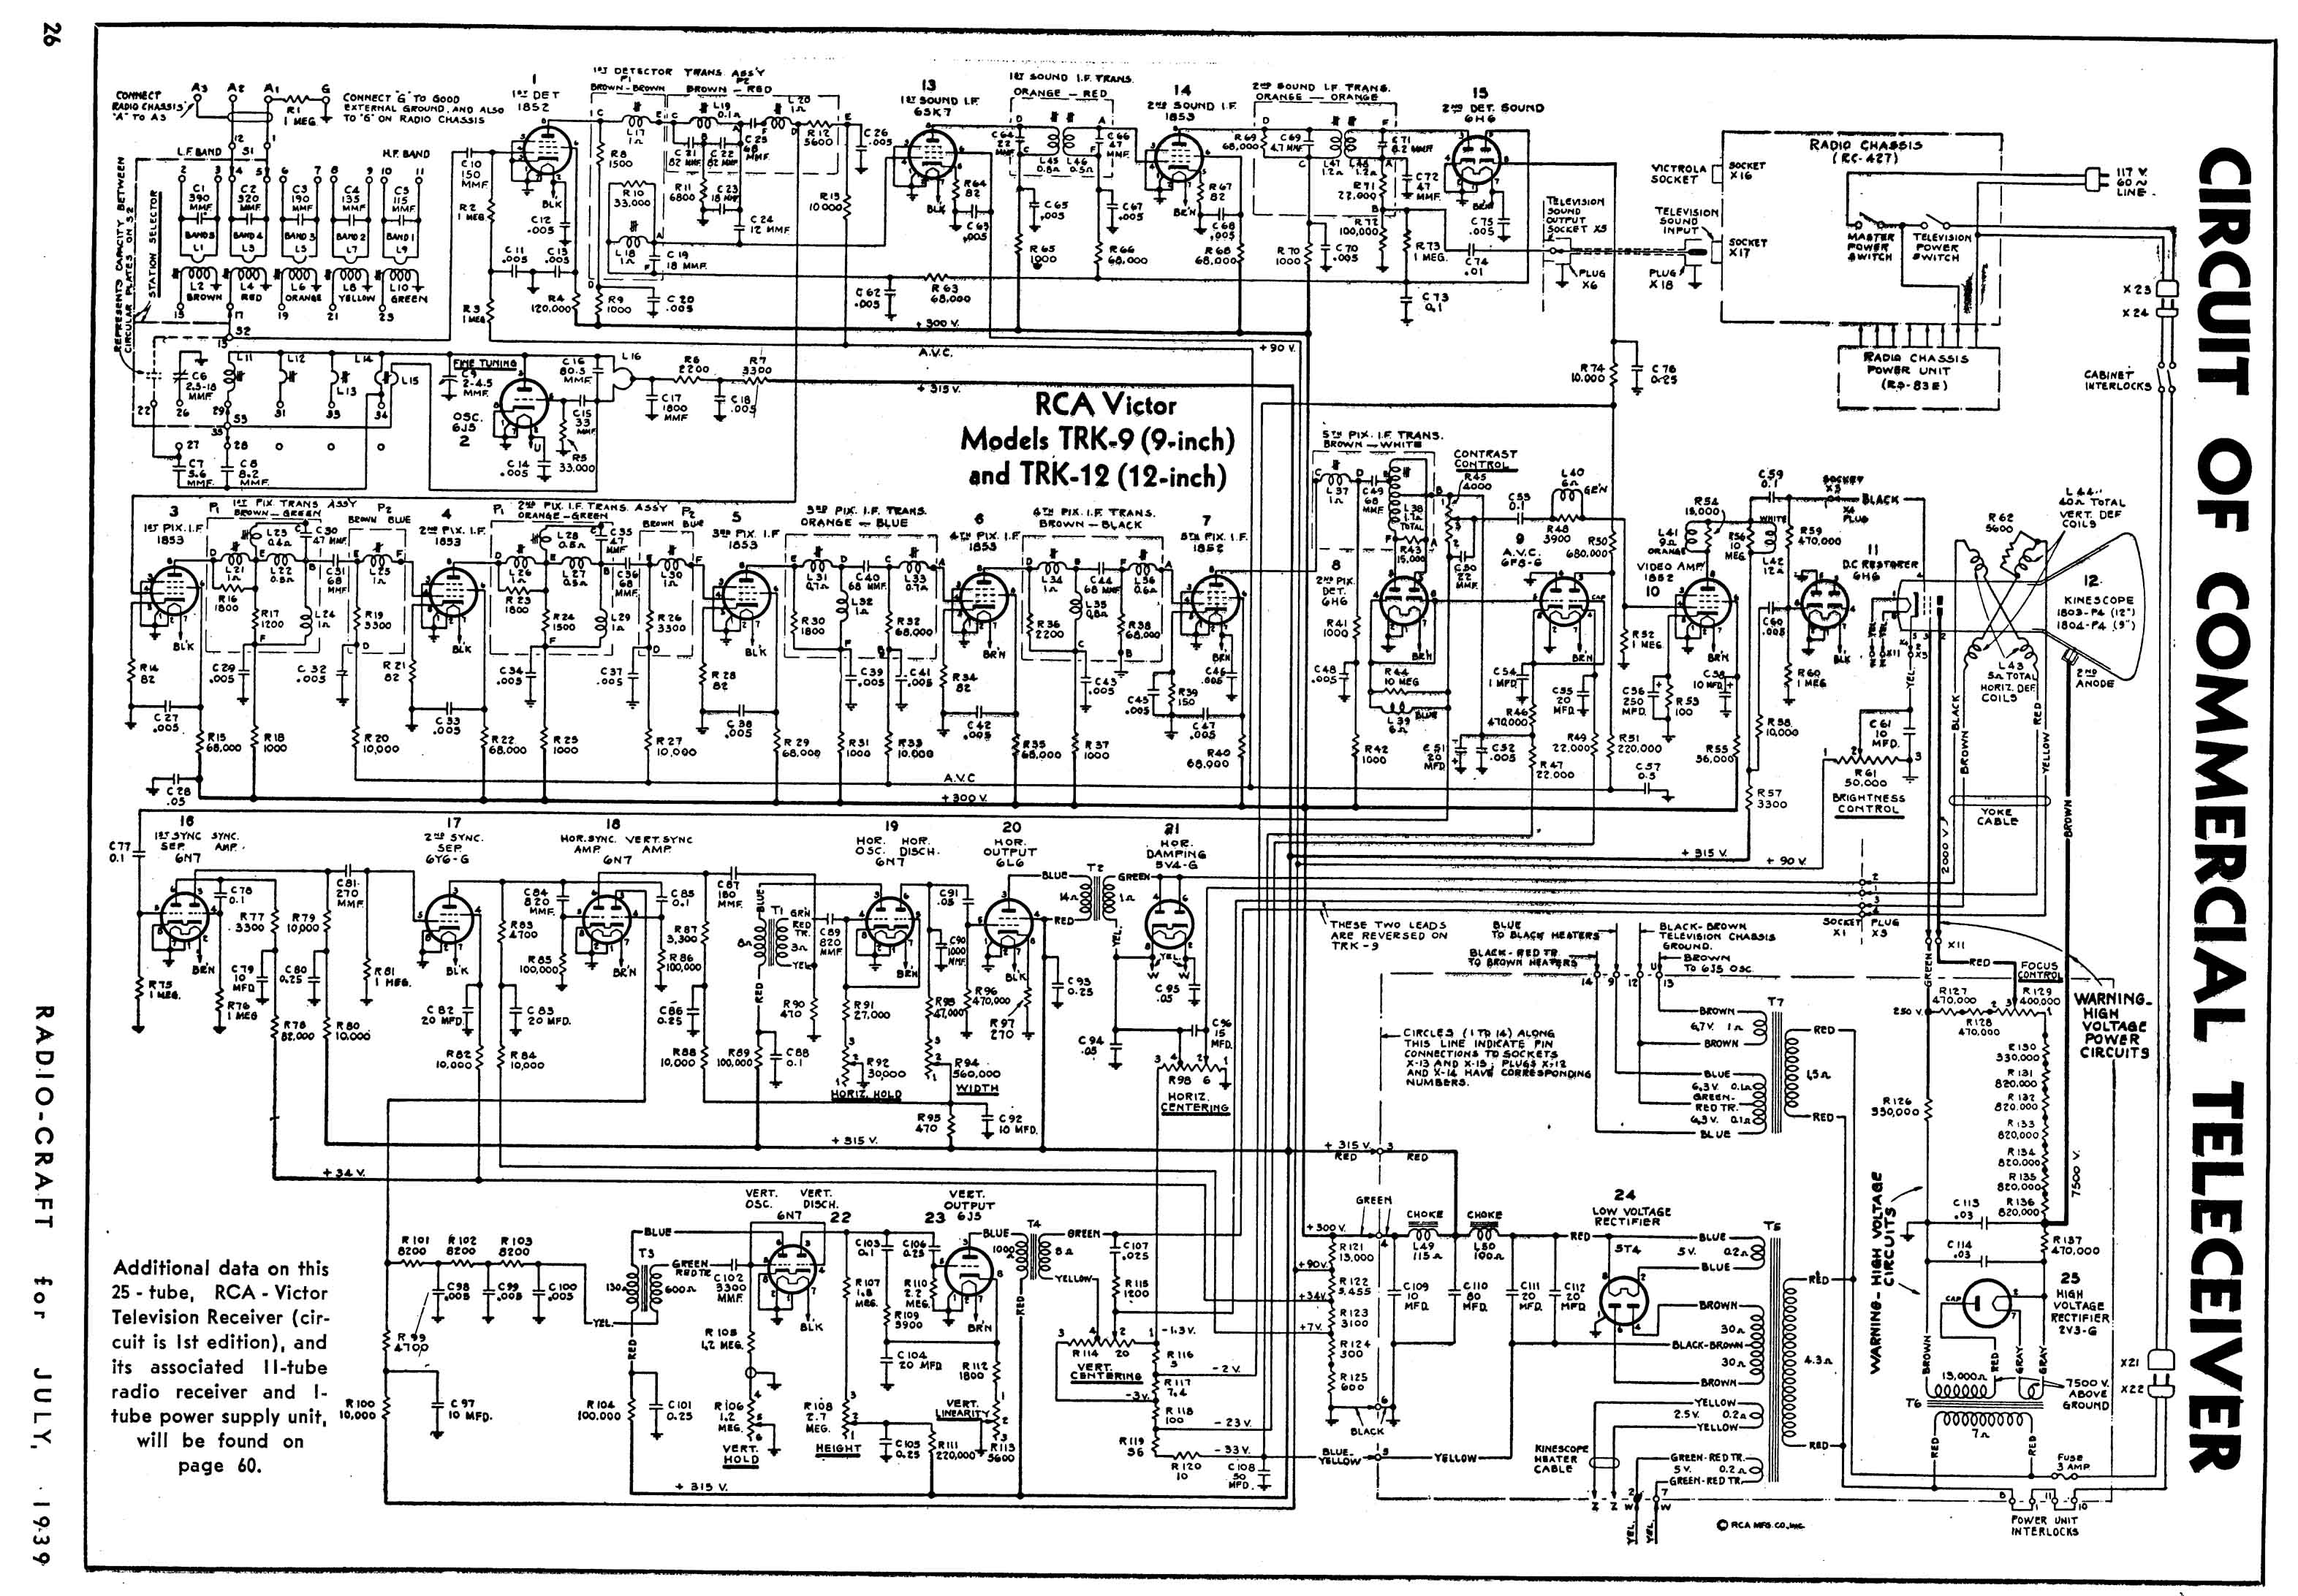 Samsung Tv Circuit Diagram - Wiring Diagram Expert on free download cross section, free hallicrafters sx 122 schematics diagrams, free schematic diagram hitachi 55hdt79, free electrical schematics, free schematic diagram h6677 citizen, free electronic circuit diagram,